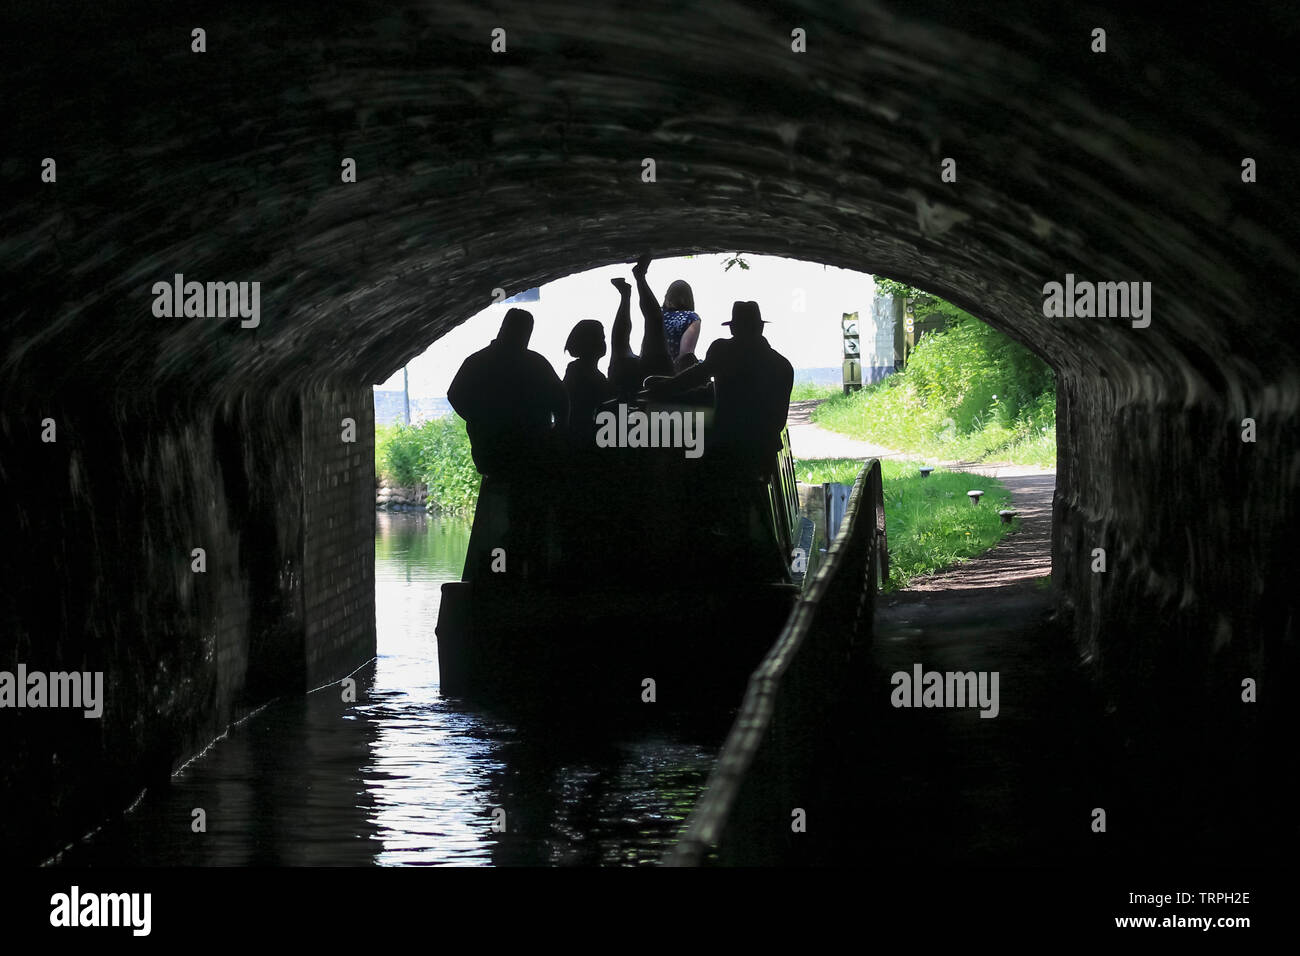 Silhouetted rear view of people in UK narrowboat on British canal moving through dark tunnel; upside down man, legs in air, propels boat by legging. Stock Photo